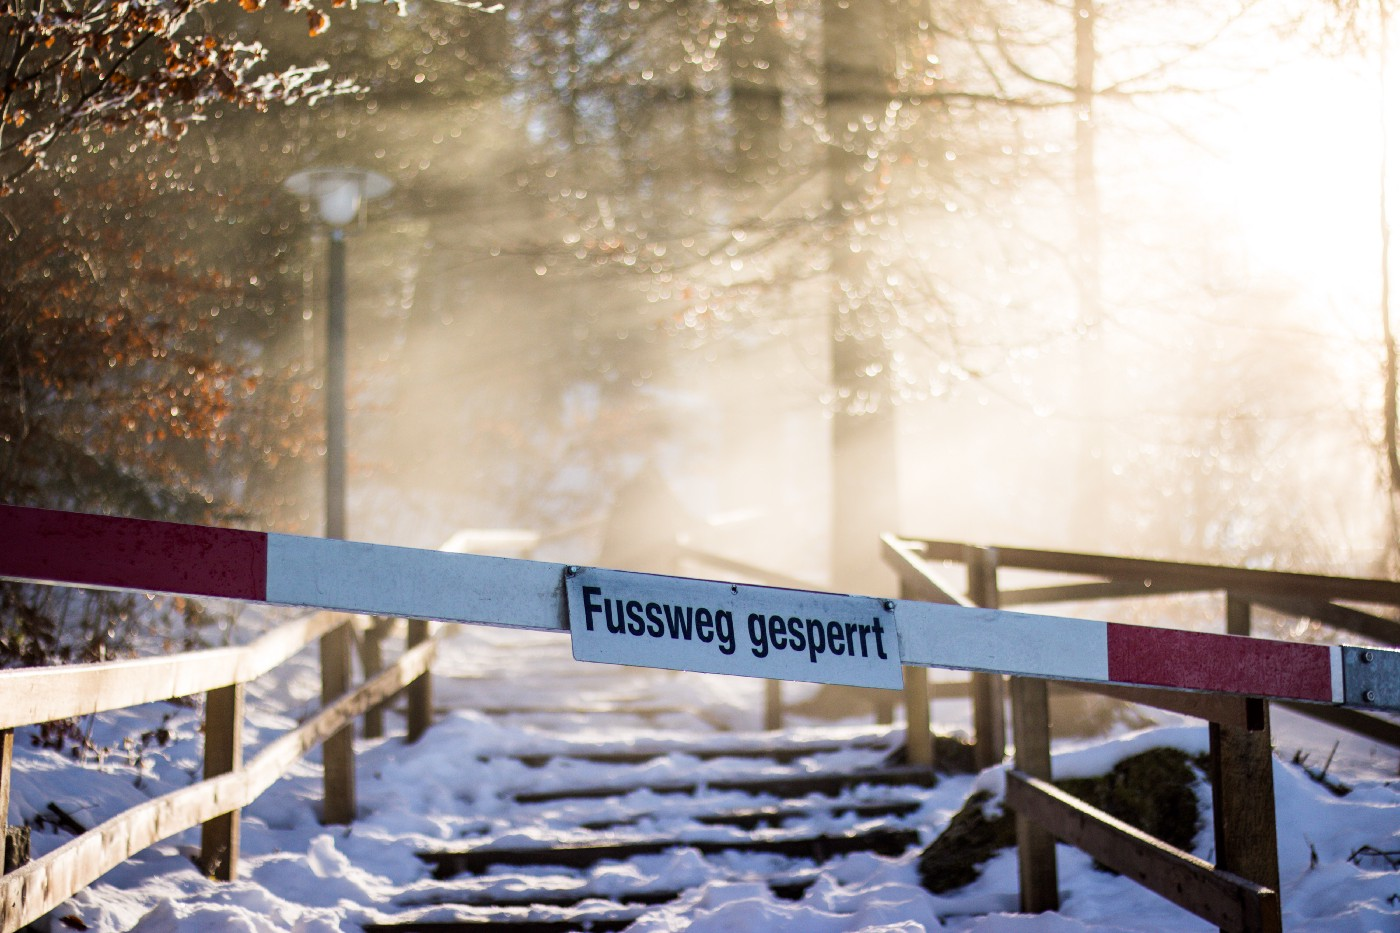 """A blockade standing in front of a forest background, with the words """"Fussweg gesperrt"""" written on it."""